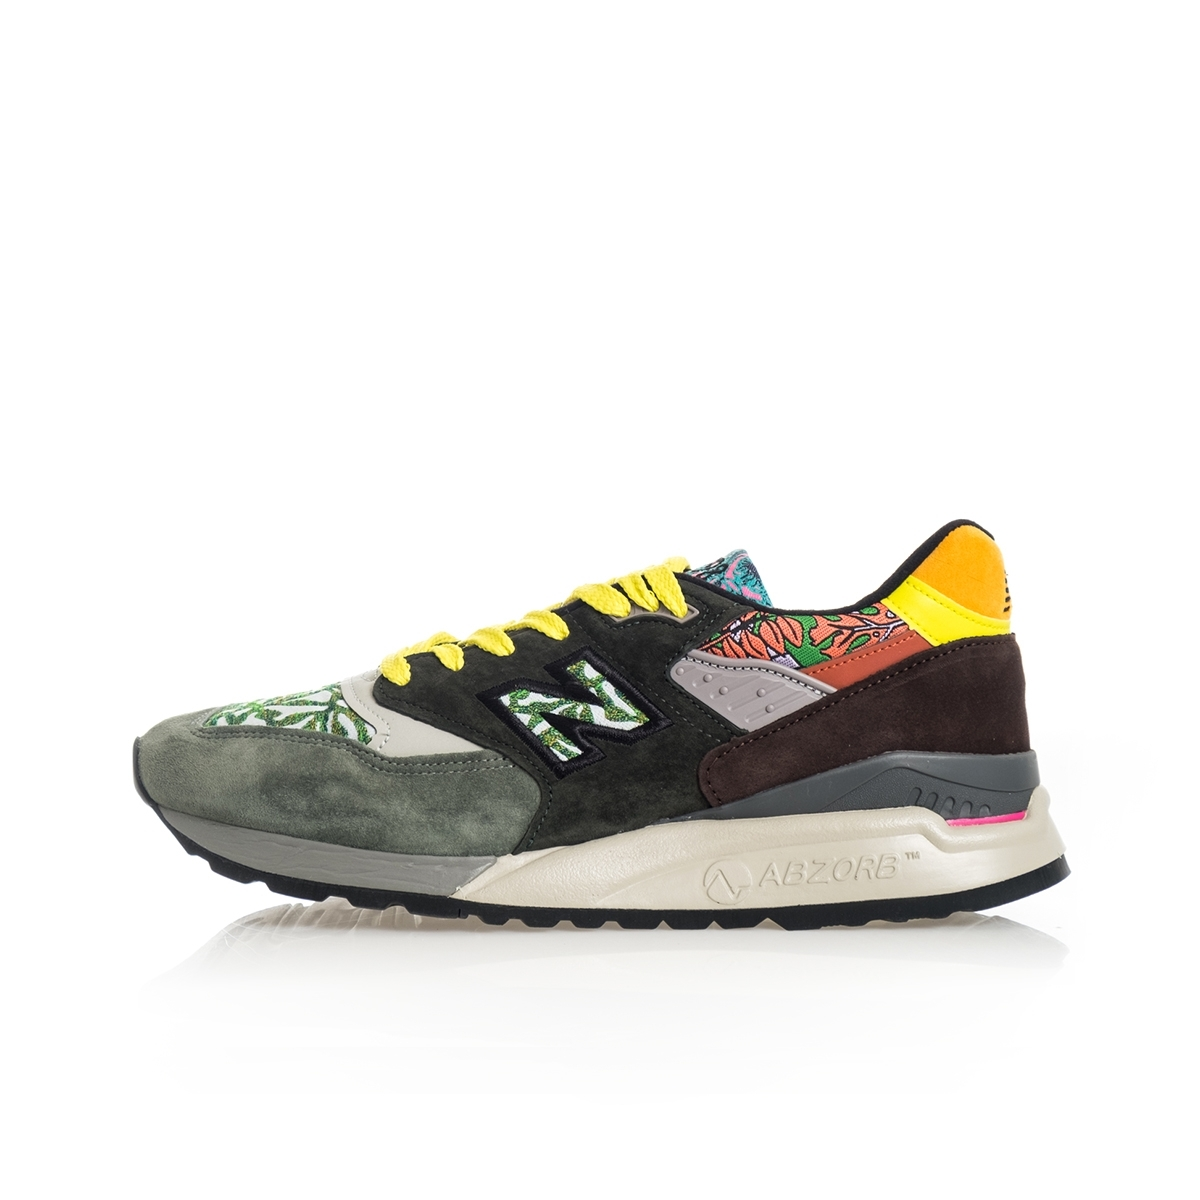 SNEAKERS MAN  NEW BALANCE LIFESTYLE 998 M998AWK MADE IN USA GREEN